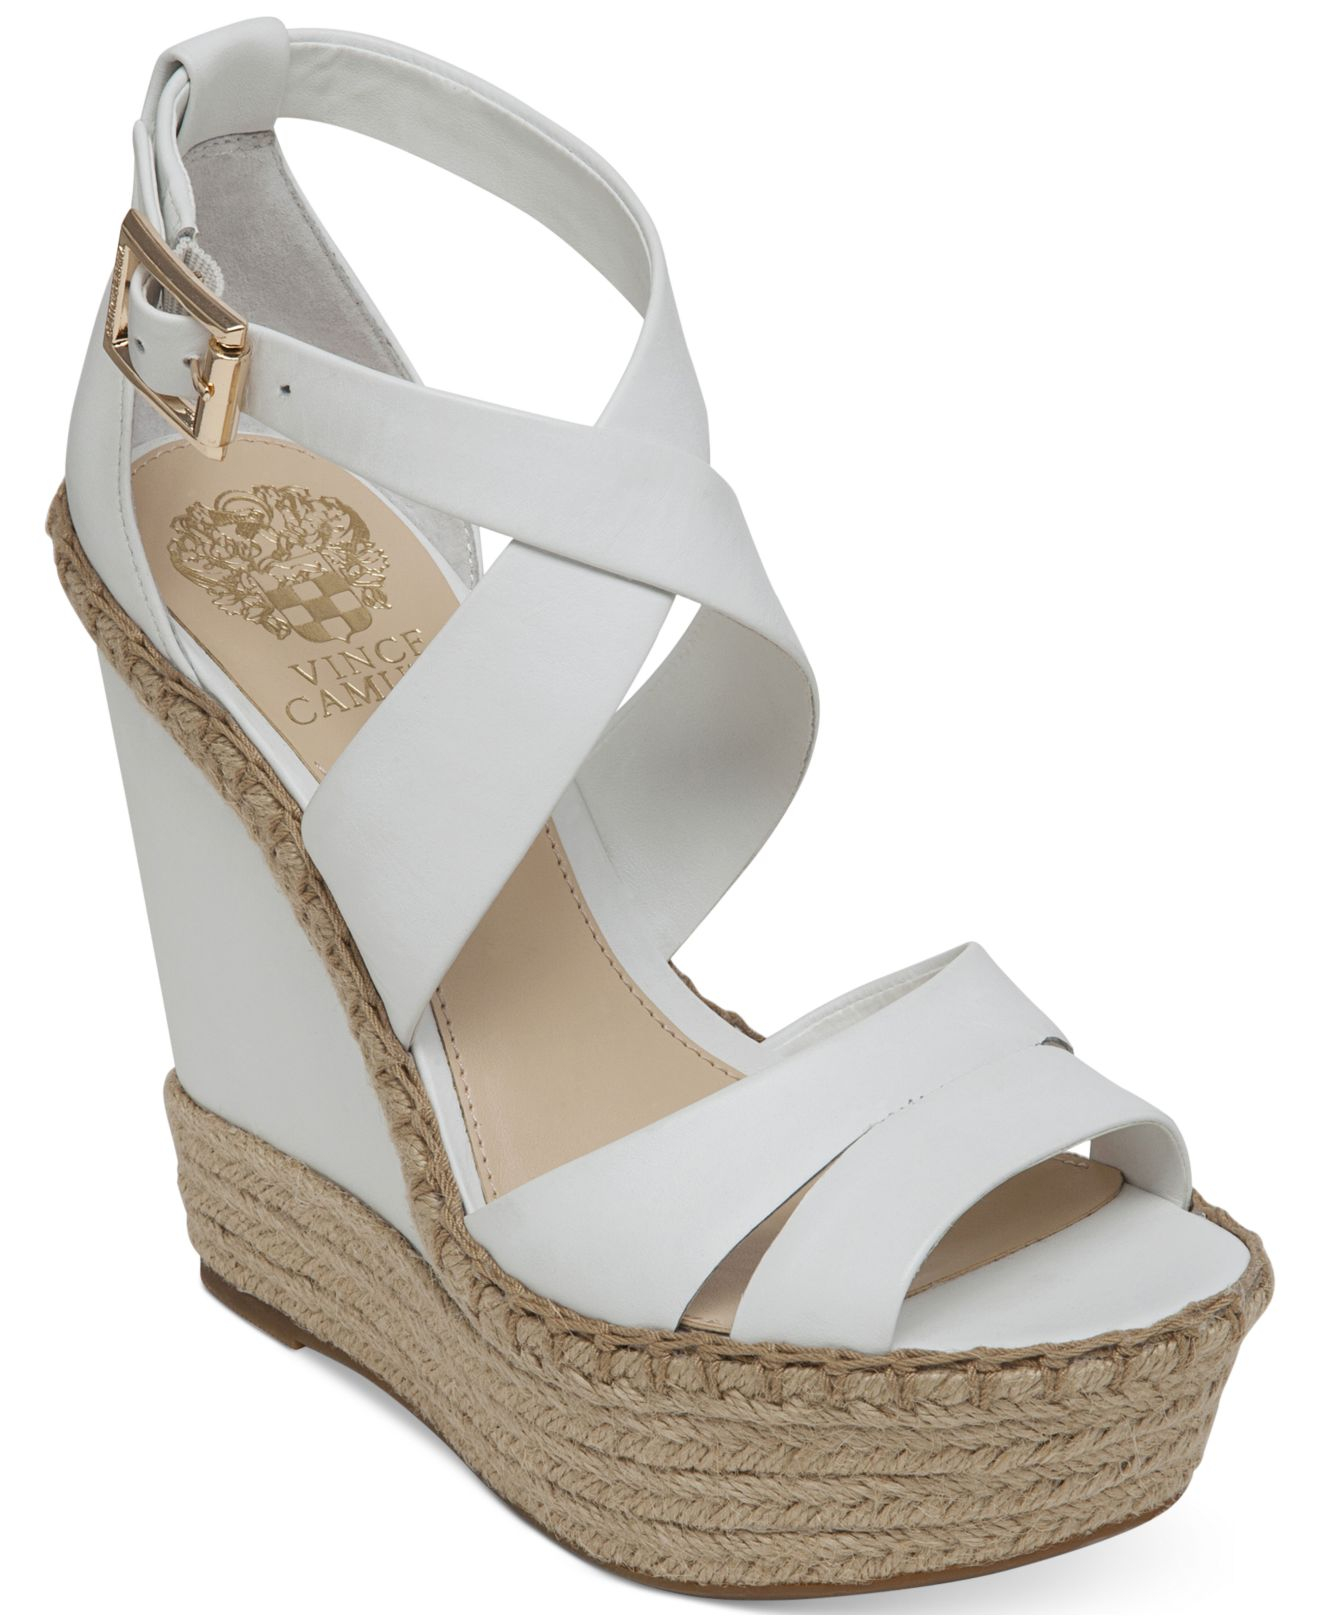 Shop cheap wedges for Women at discount prices, find the newest sexy wedges on sale in the wedge shoes section at gothicphotos.ga Cute nude wedges are always a favorite for the winter time, while nude wedge sandals are more popular in the summer months.